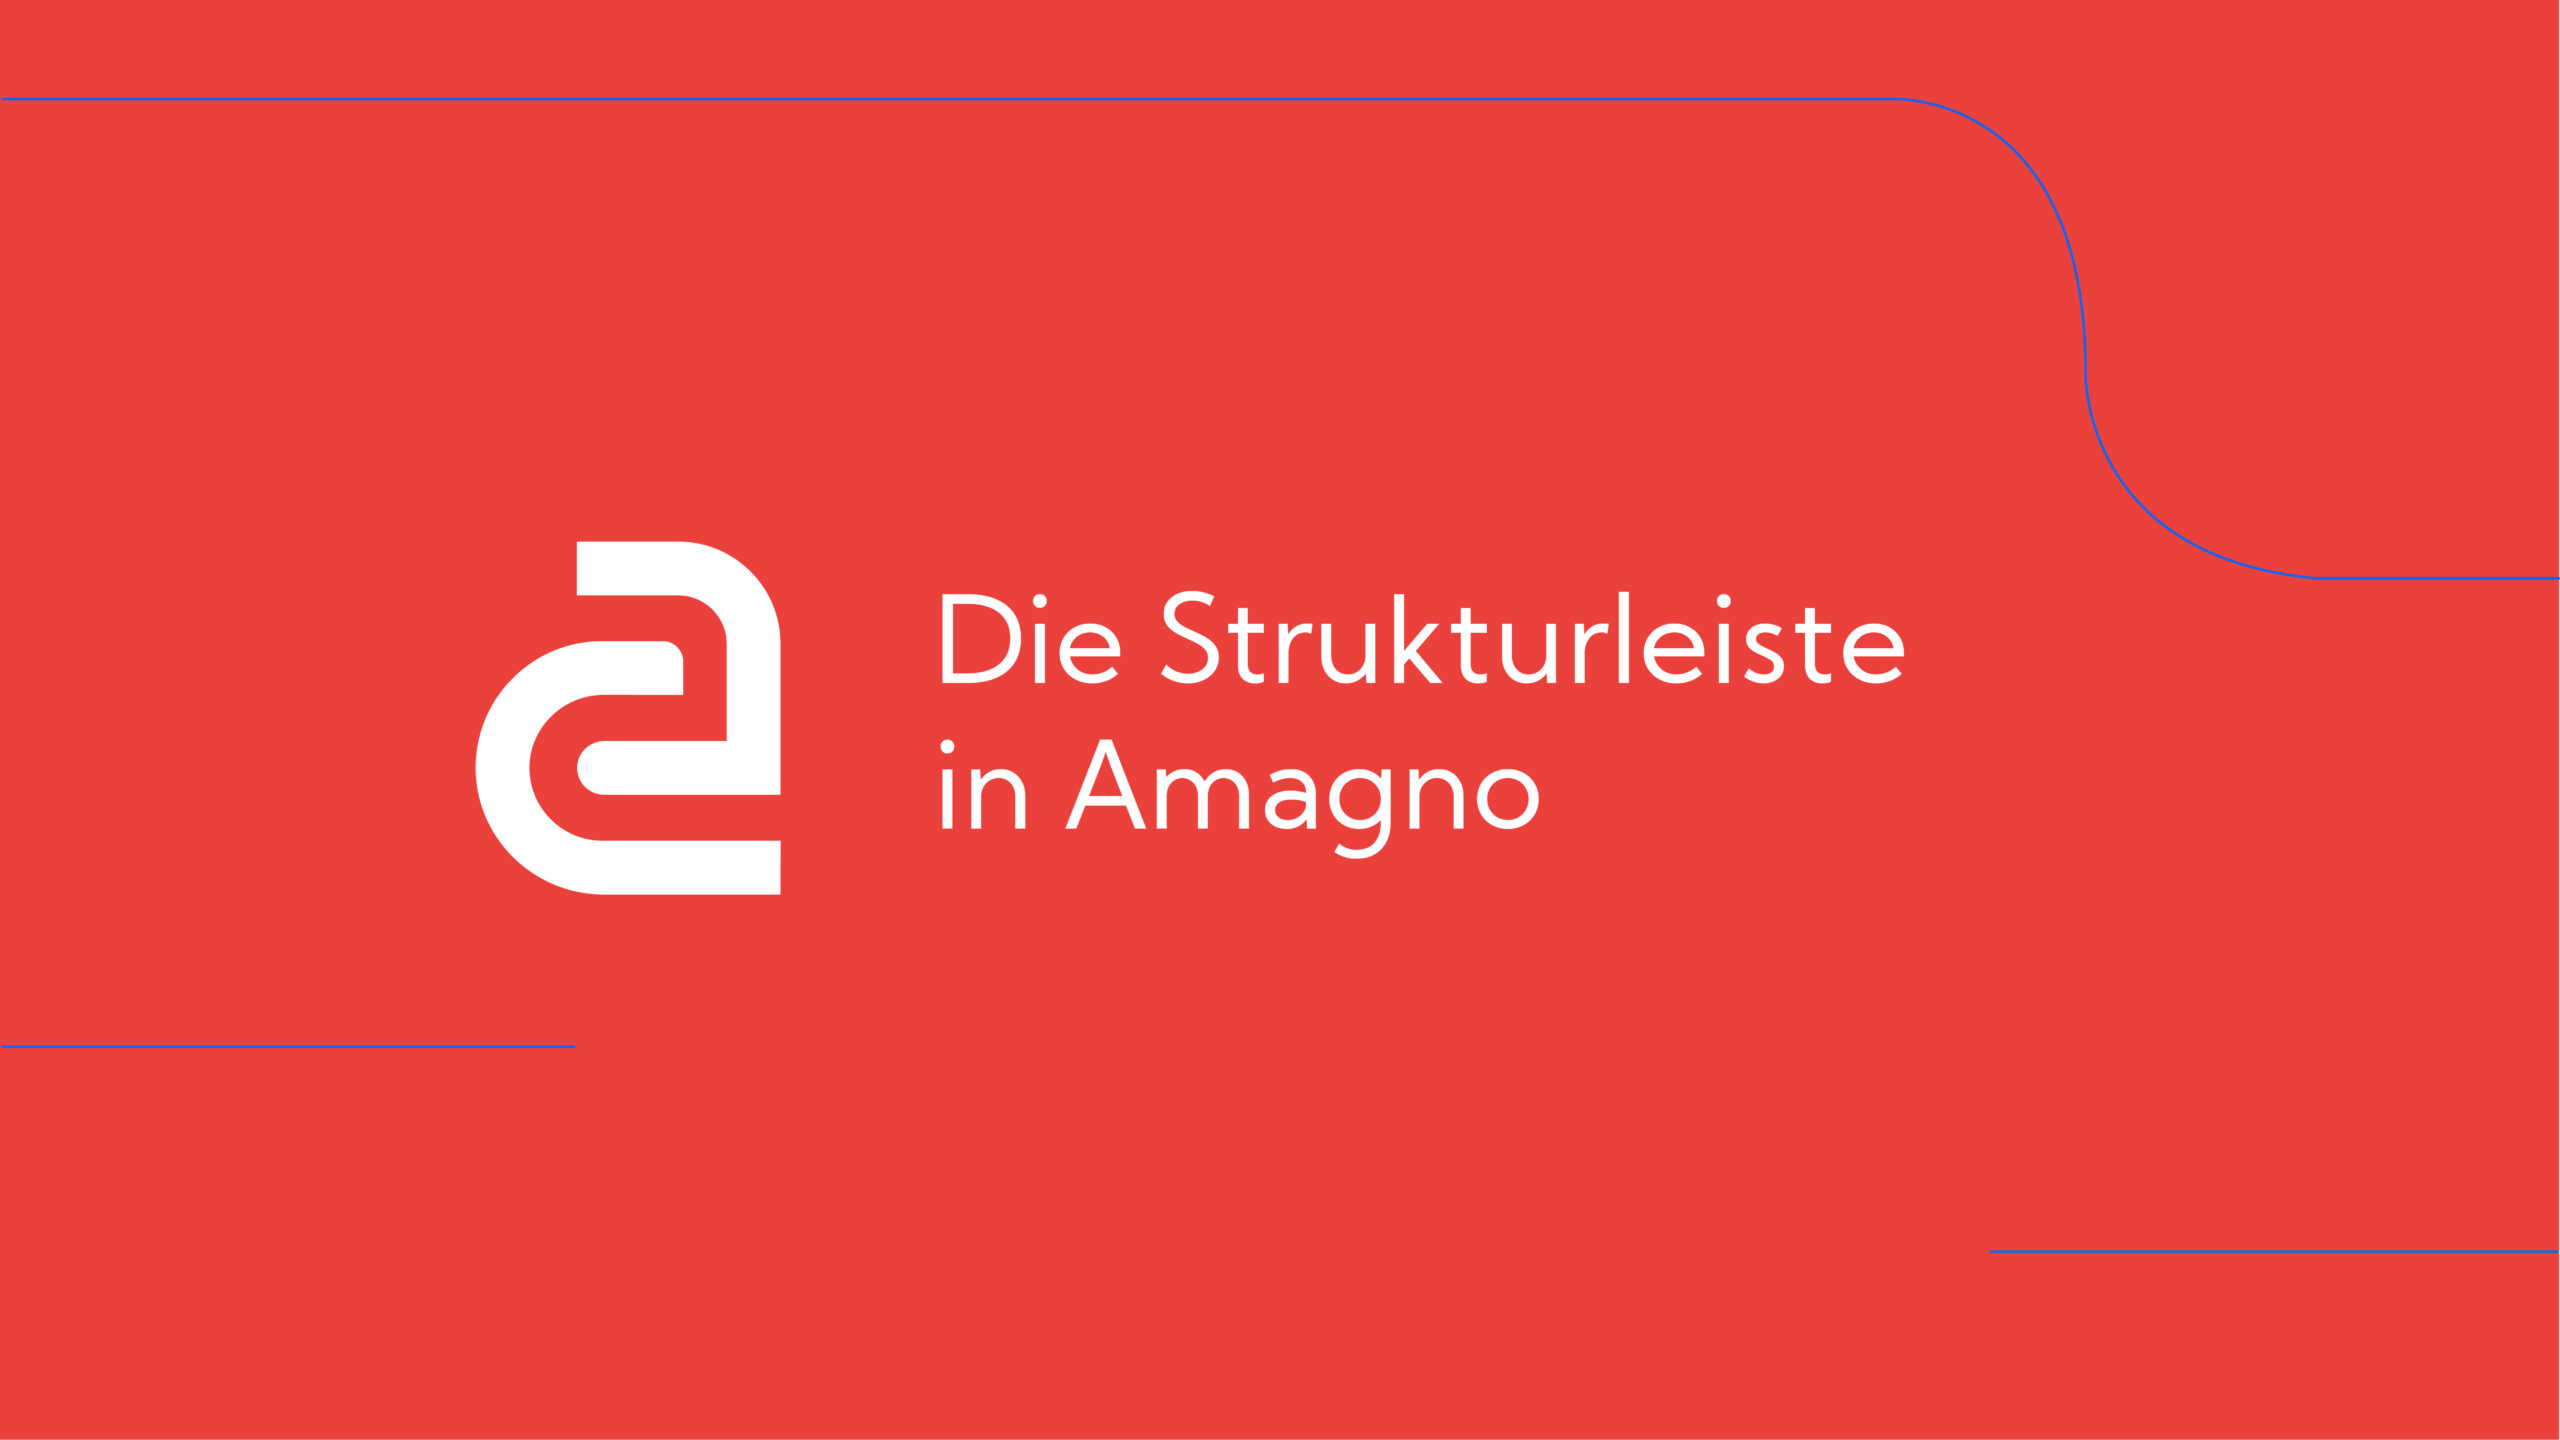 How-To: AMAGNO Basics – Die Strukturleiste